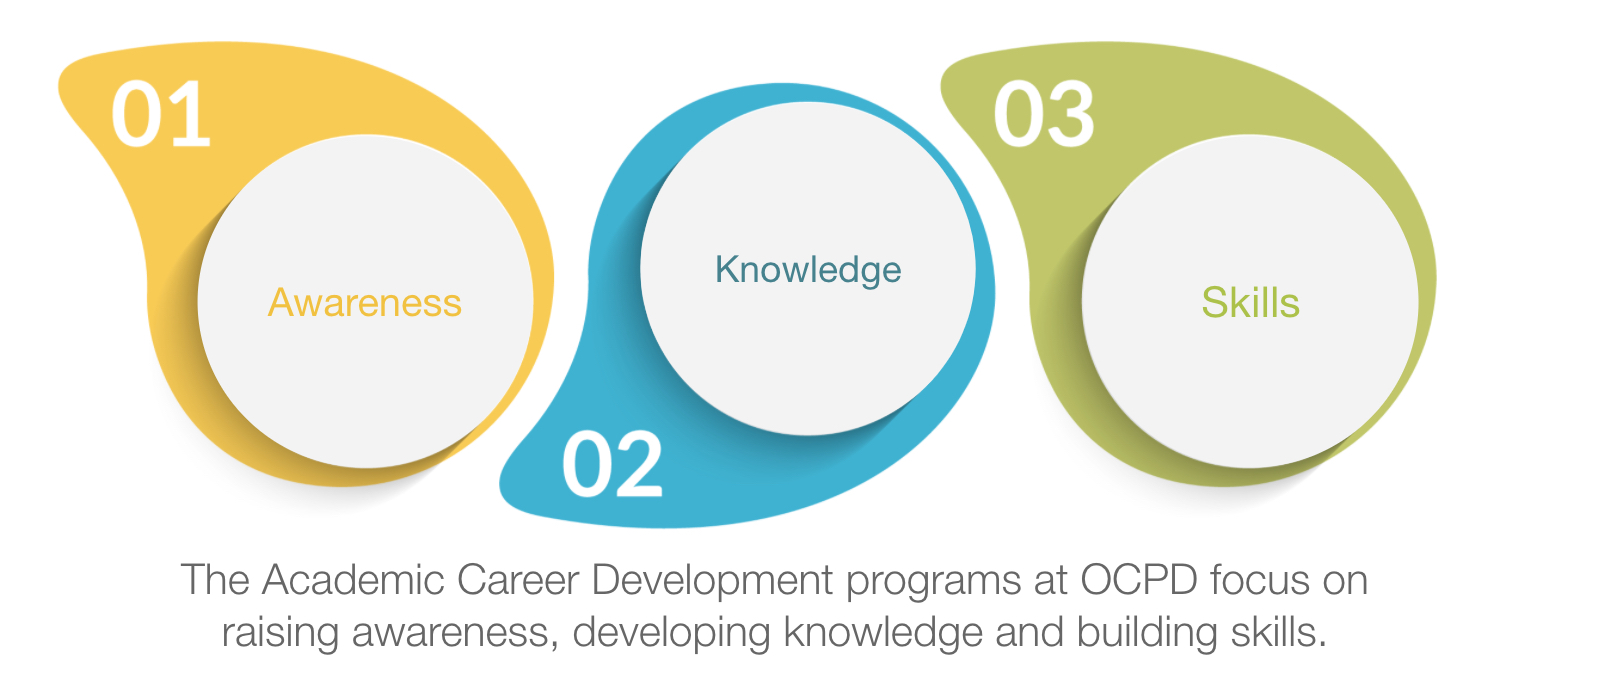 Graphic illustrating that the Academic Career Development programs at OCPD focus on raising awareness, developing knowledge and building skills.